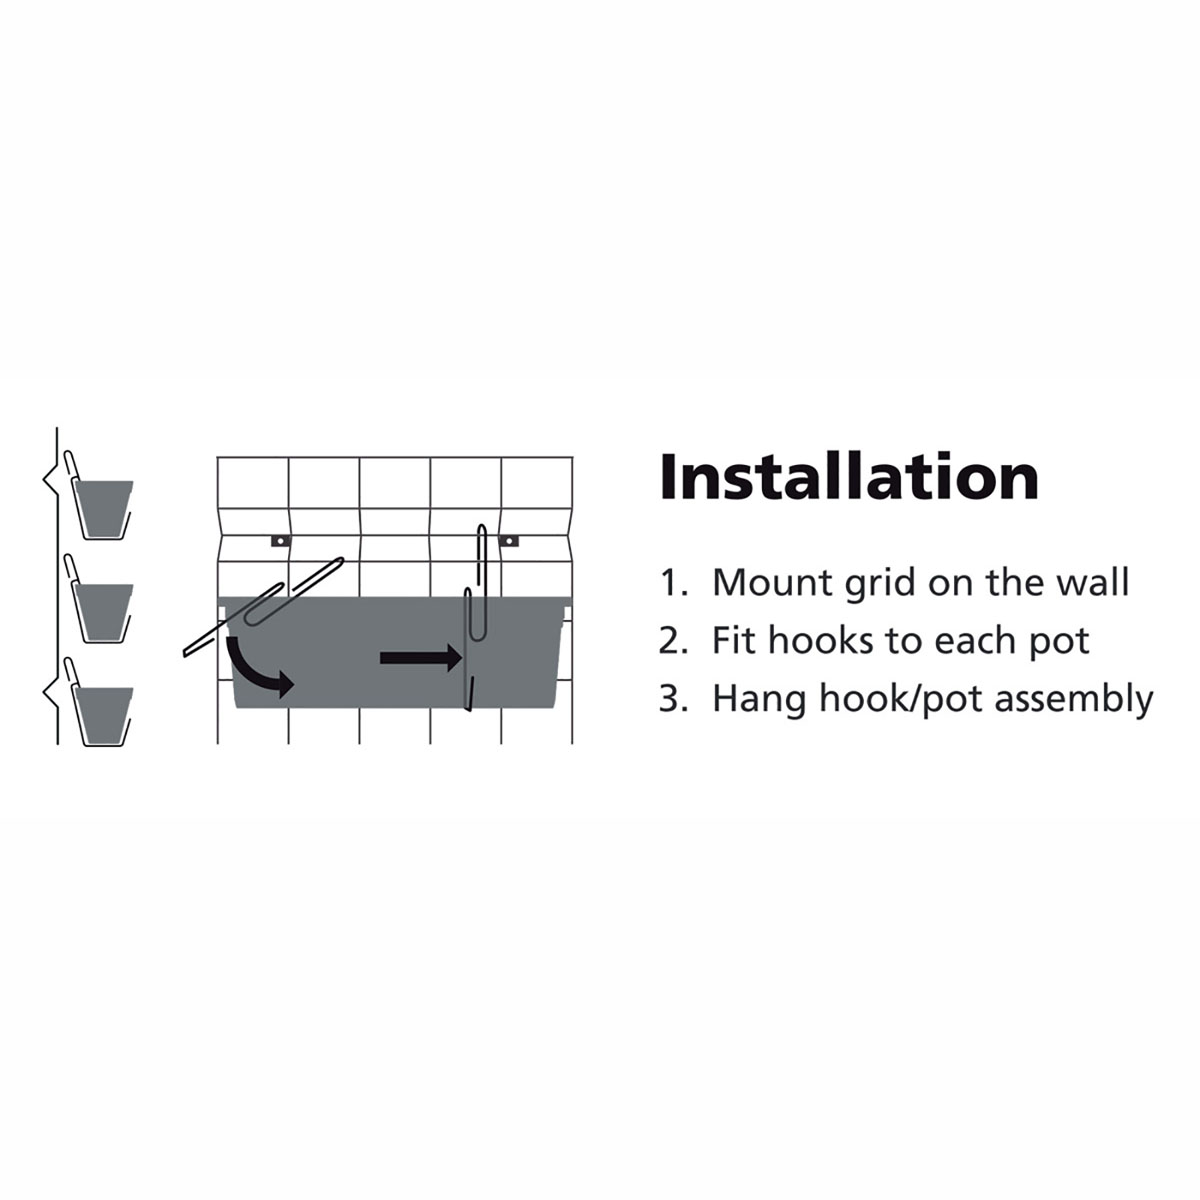 18194 Garden Up Classic Wall Kit installation guide